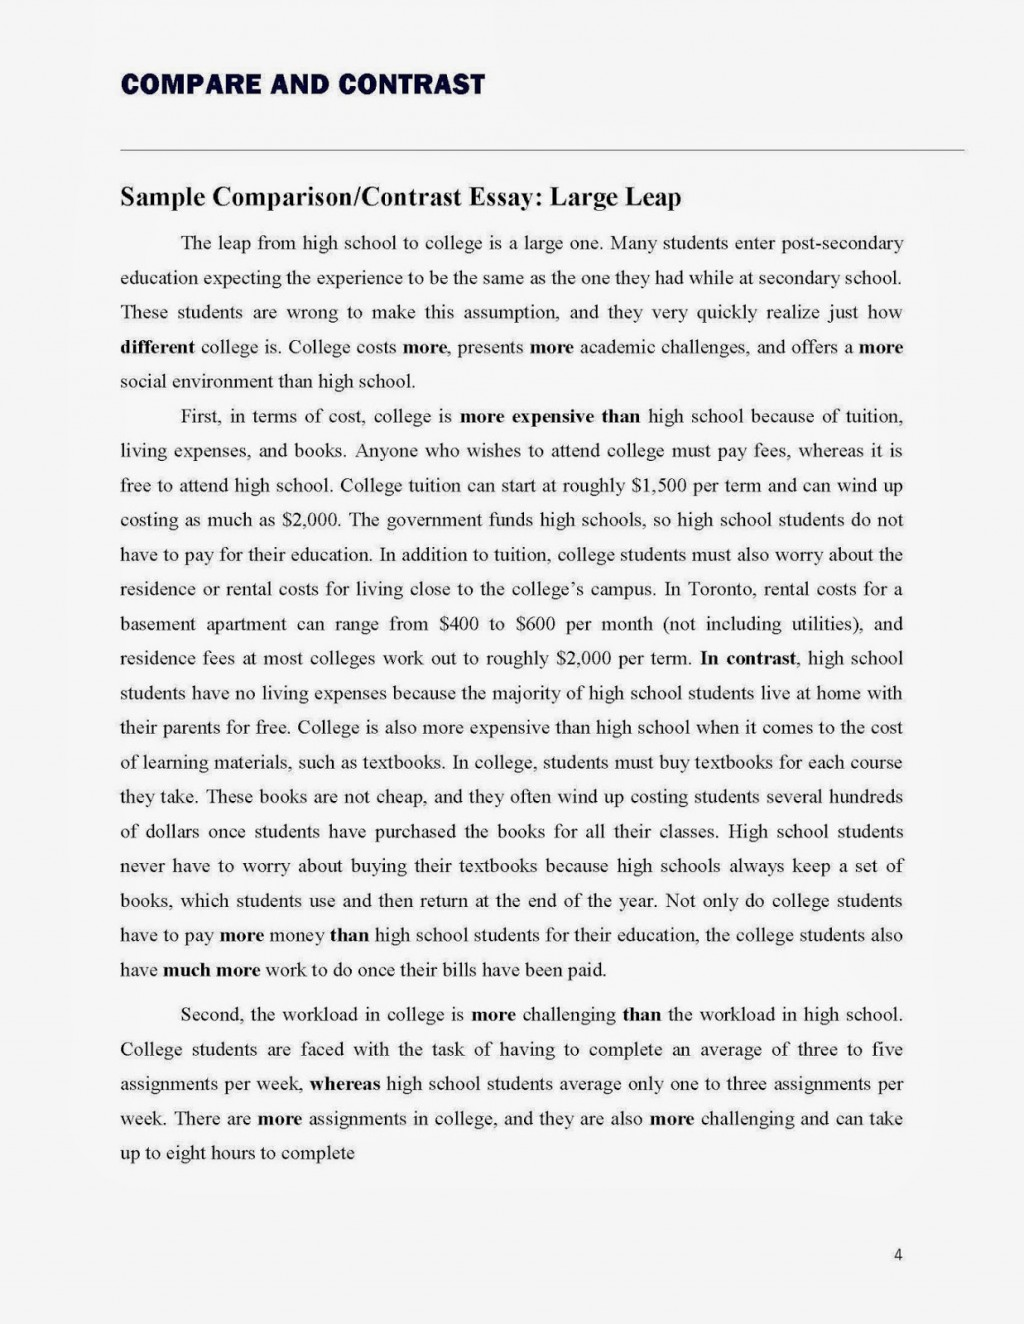 011 Compare And Contrast Essay Compareandcontrastessay Page 4h125 Frightening Topics Outline Doc Sample 4th Grade Large